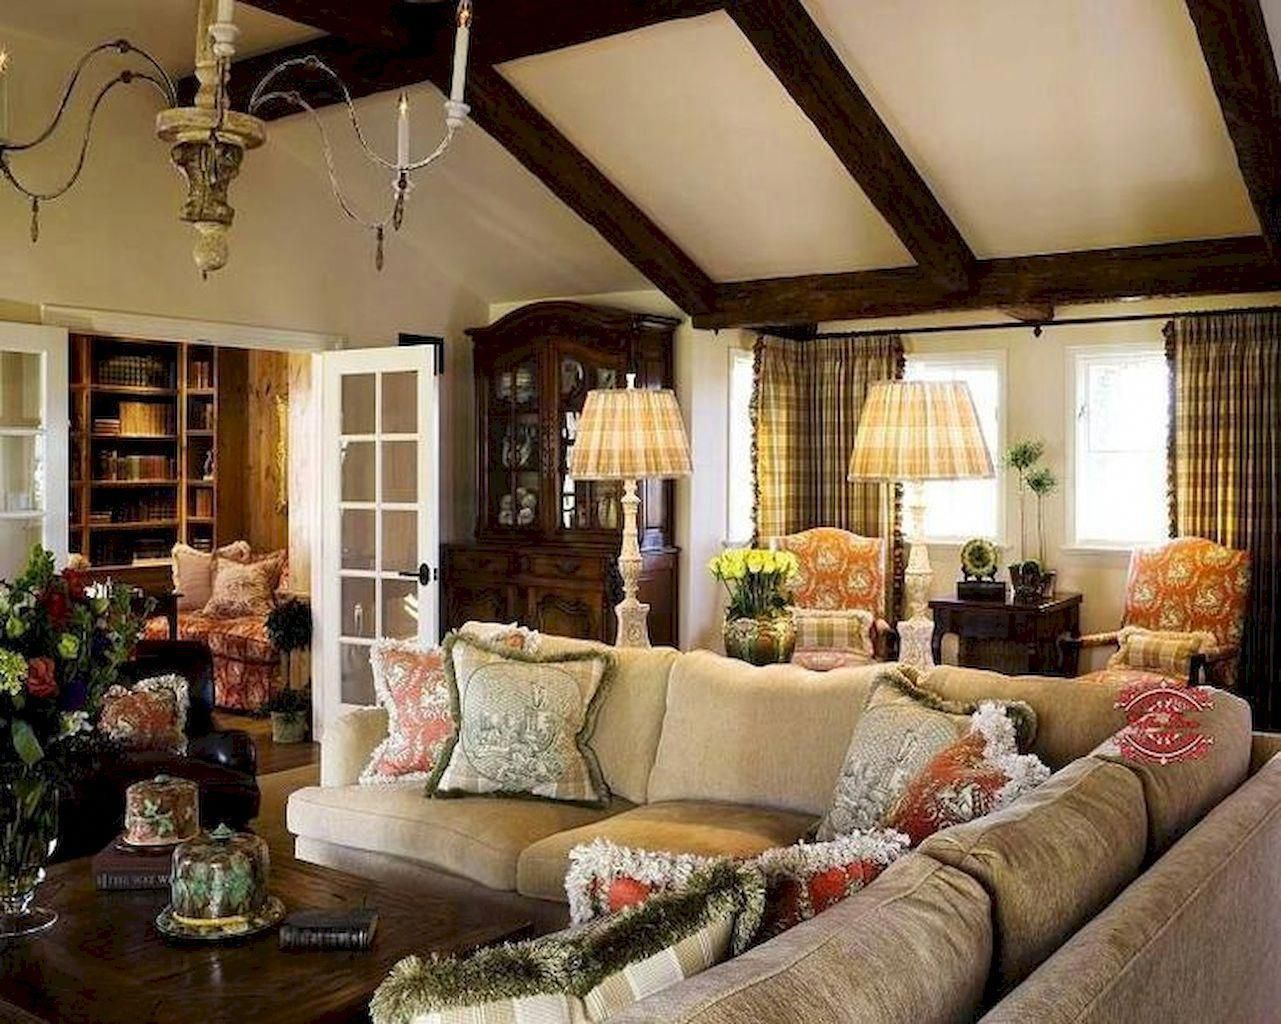 French country living room design and decor ideas frenchcountryinterior also rh pinterest